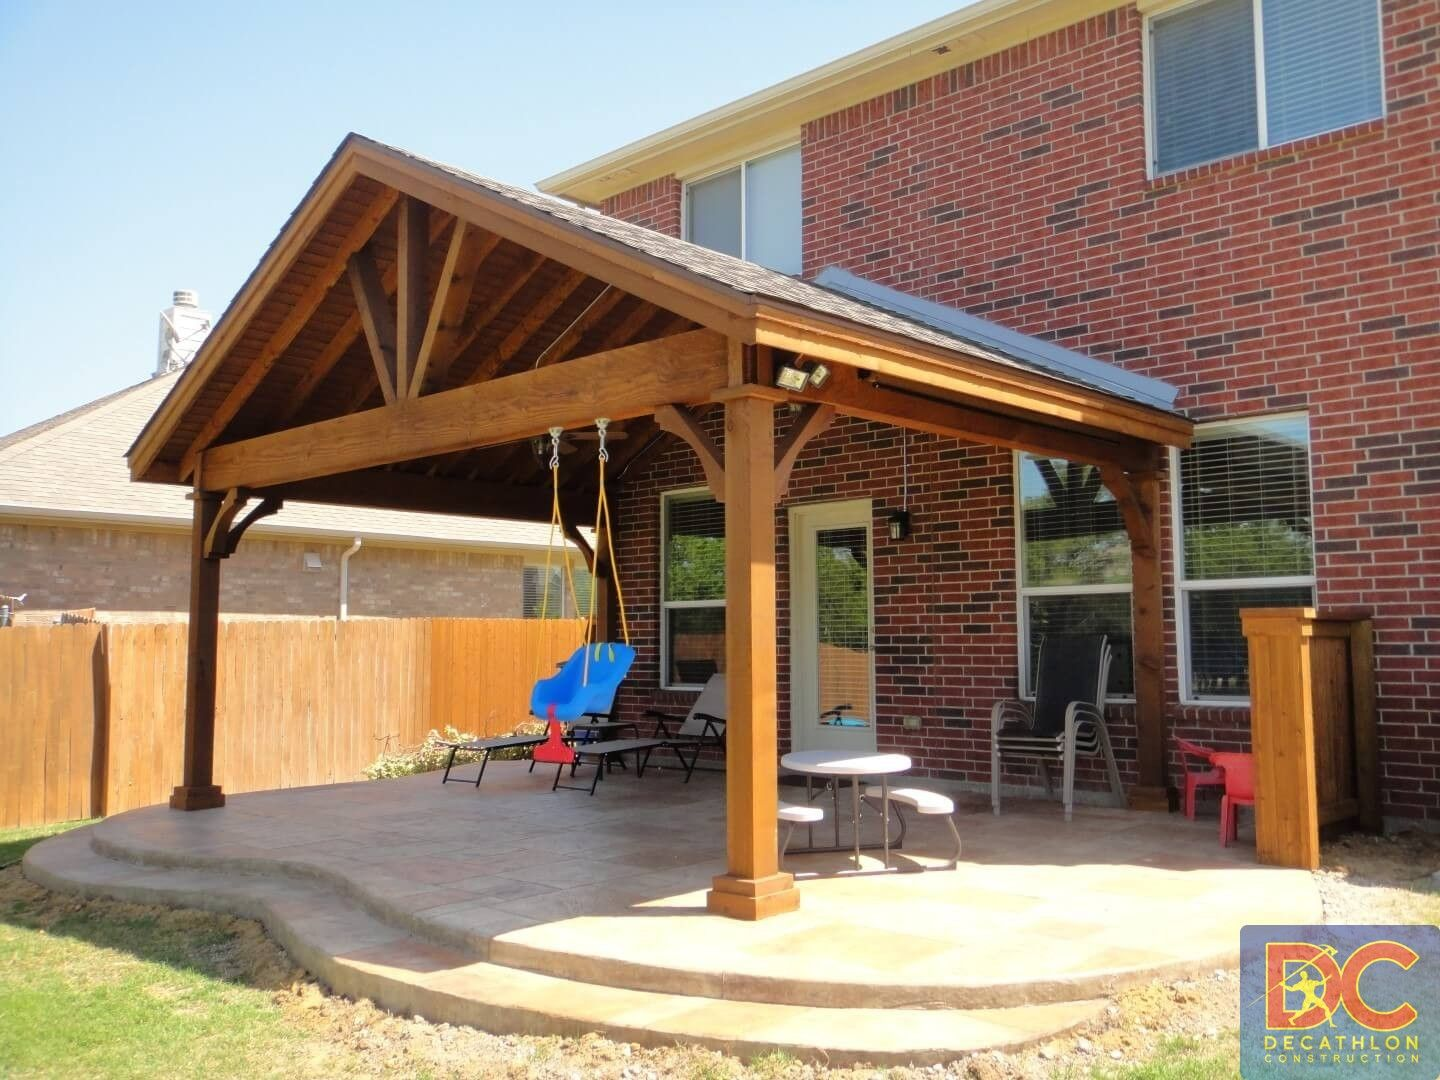 Full Gable Patio Covers Gallery Highest Quality Waterproof Patio Covers In Dallas Plano And Surrounding Texas Outdoor Covered Patio Pergola Pergola Designs